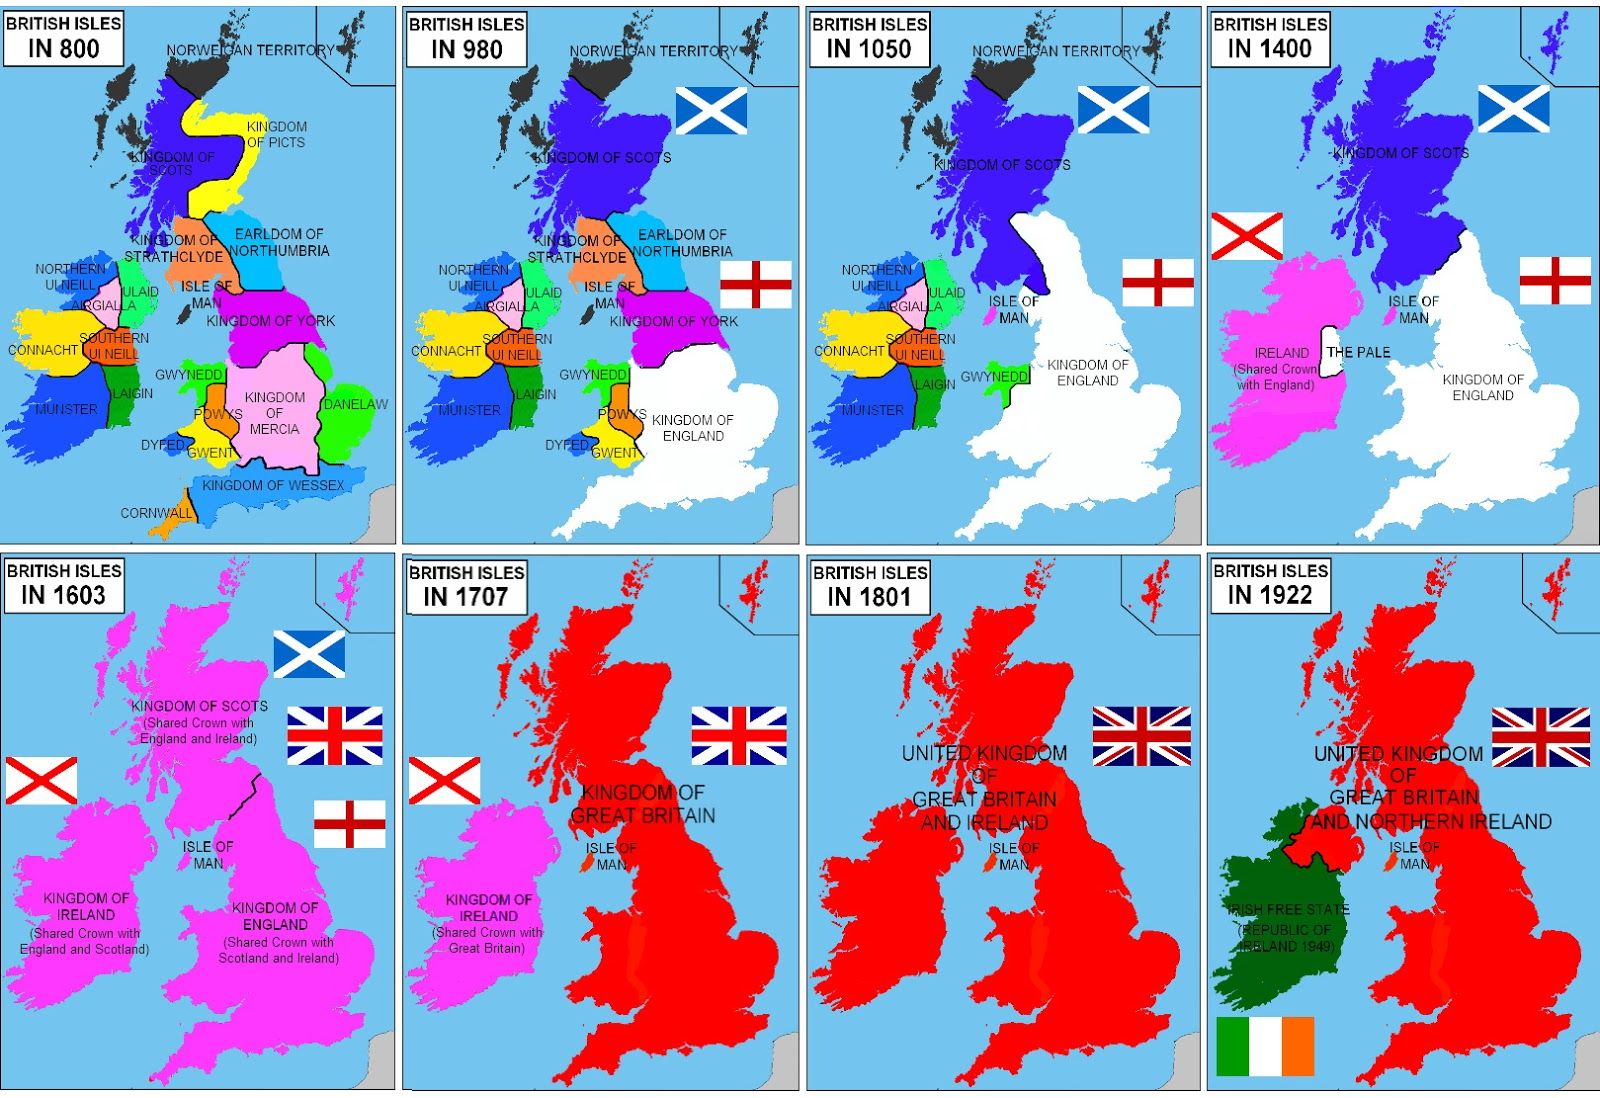 Unification of the British Isles since 800 A.D.